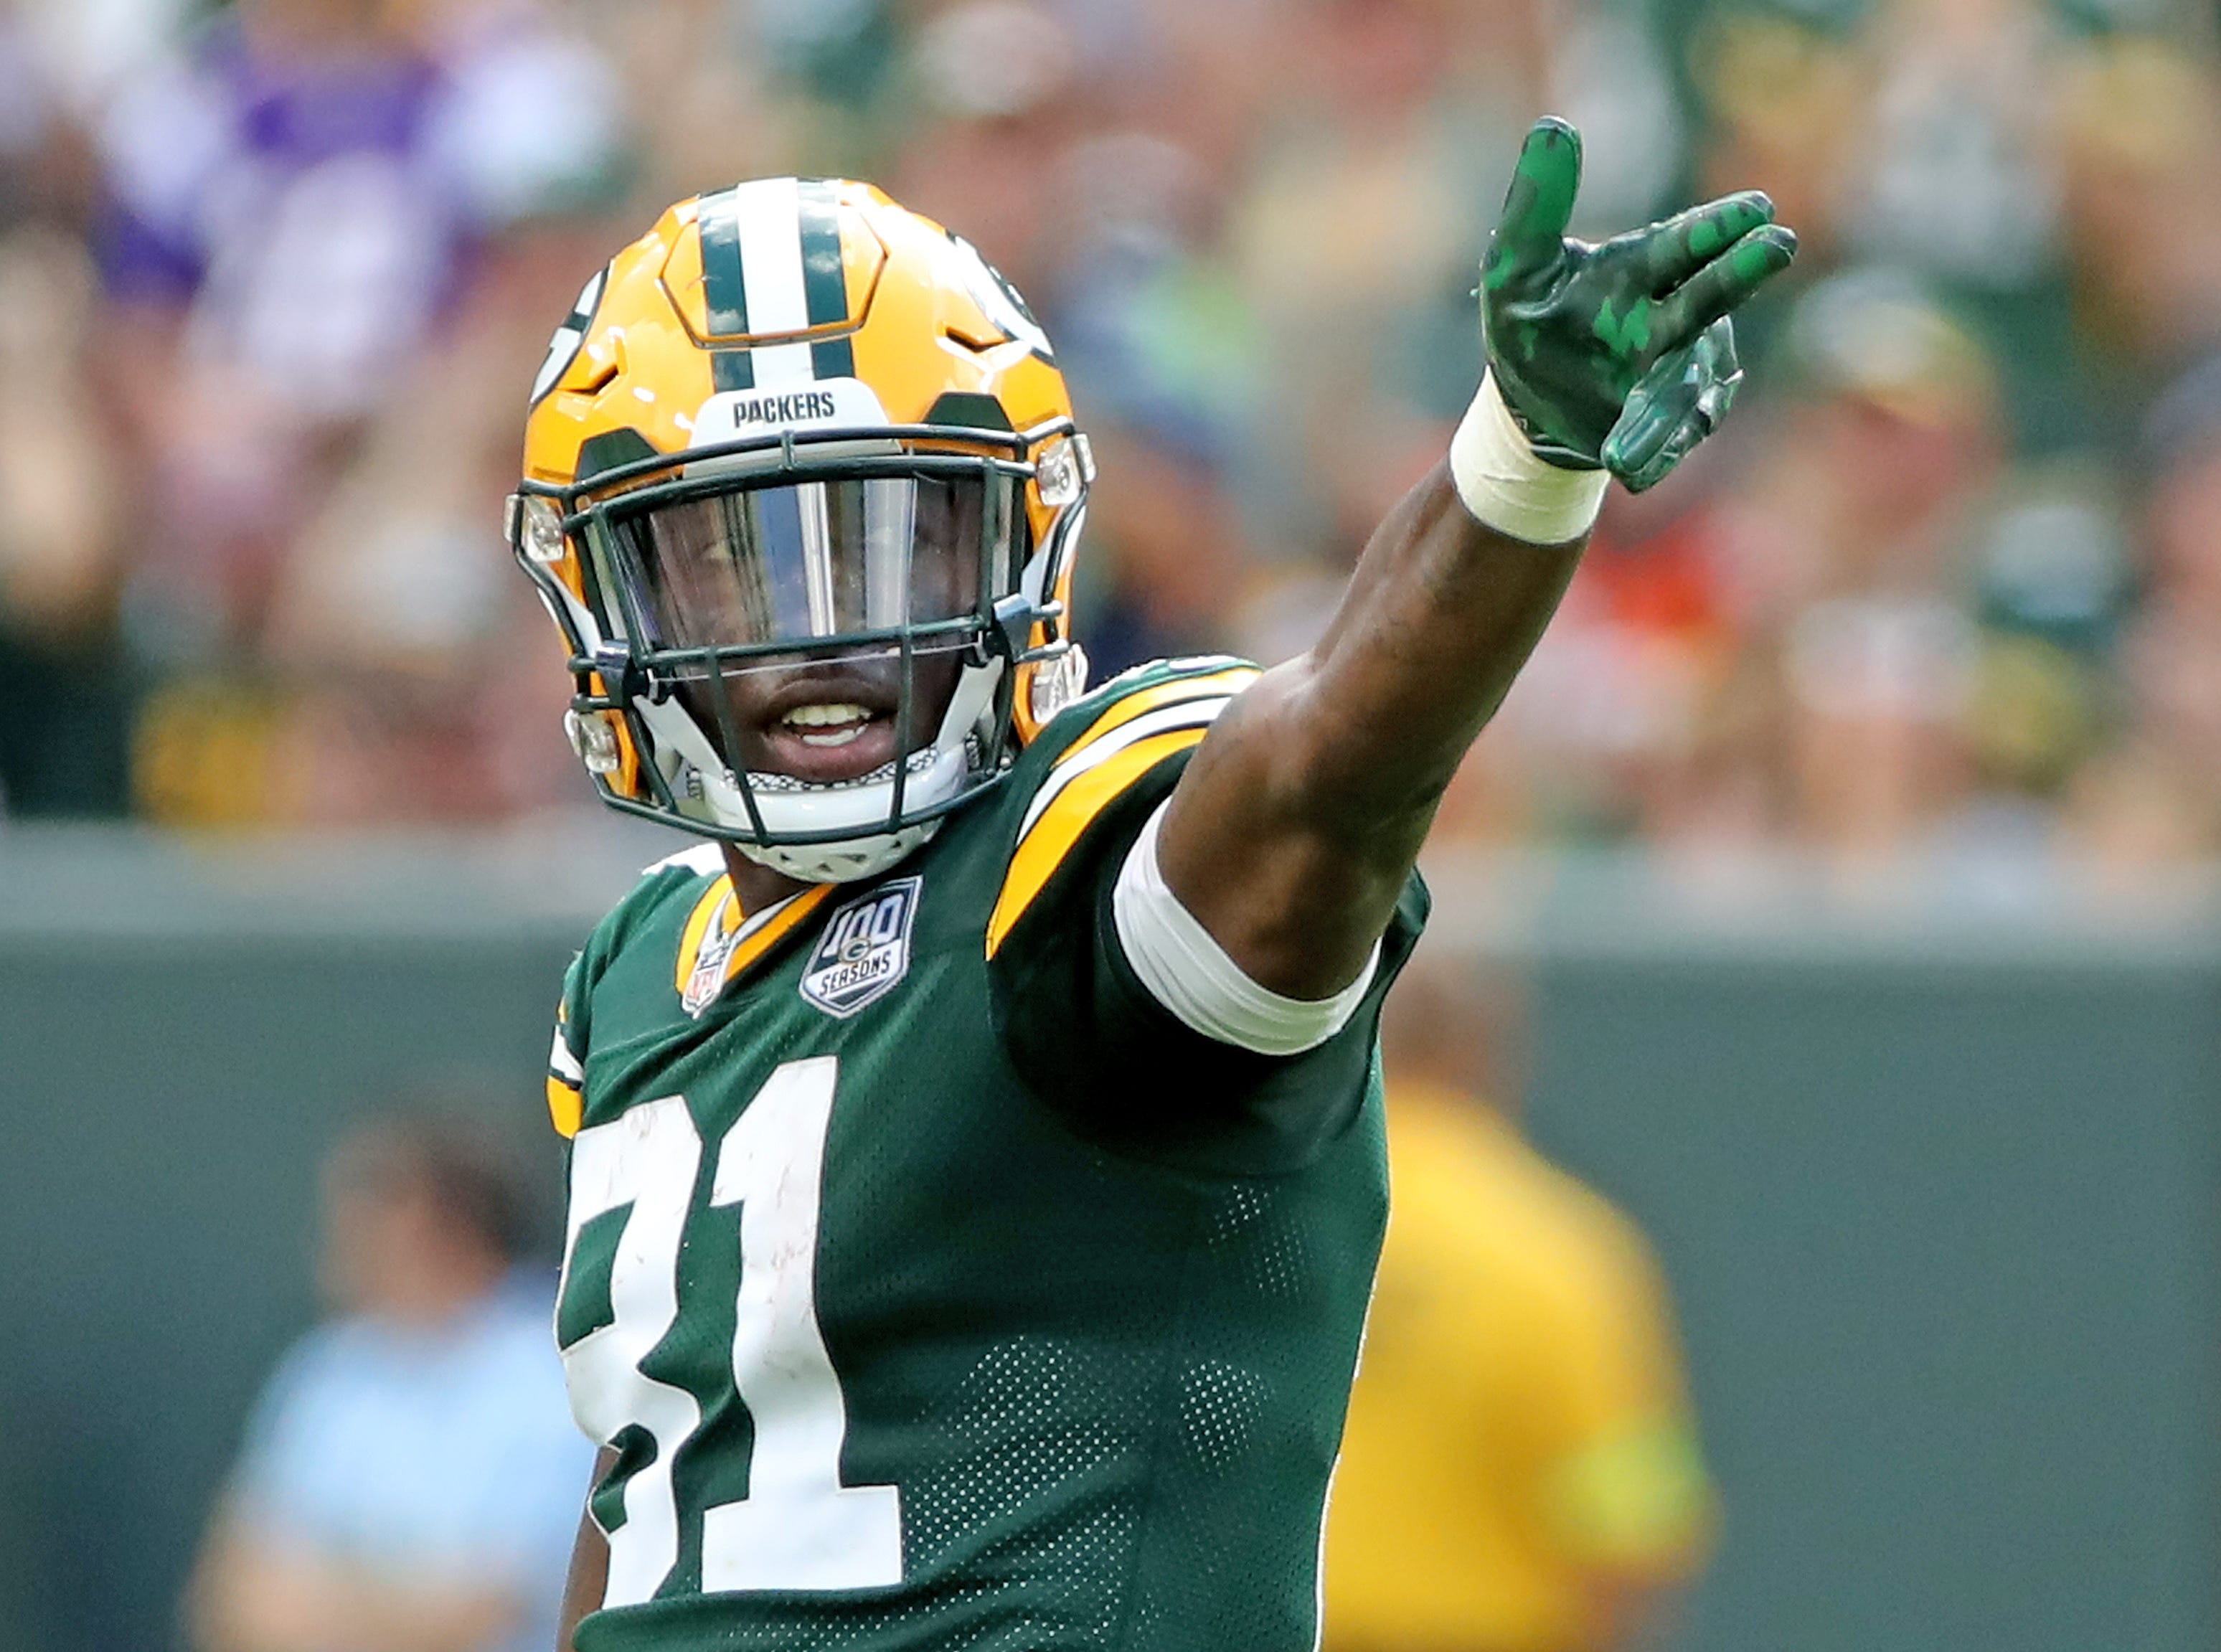 Green Bay Packers wide receiver Geronimo Allison (81) signals first down after a catch against the Minnesota Vikings Sunday, September 16, 2018 at Lambeau Field in Green Bay, WIs.